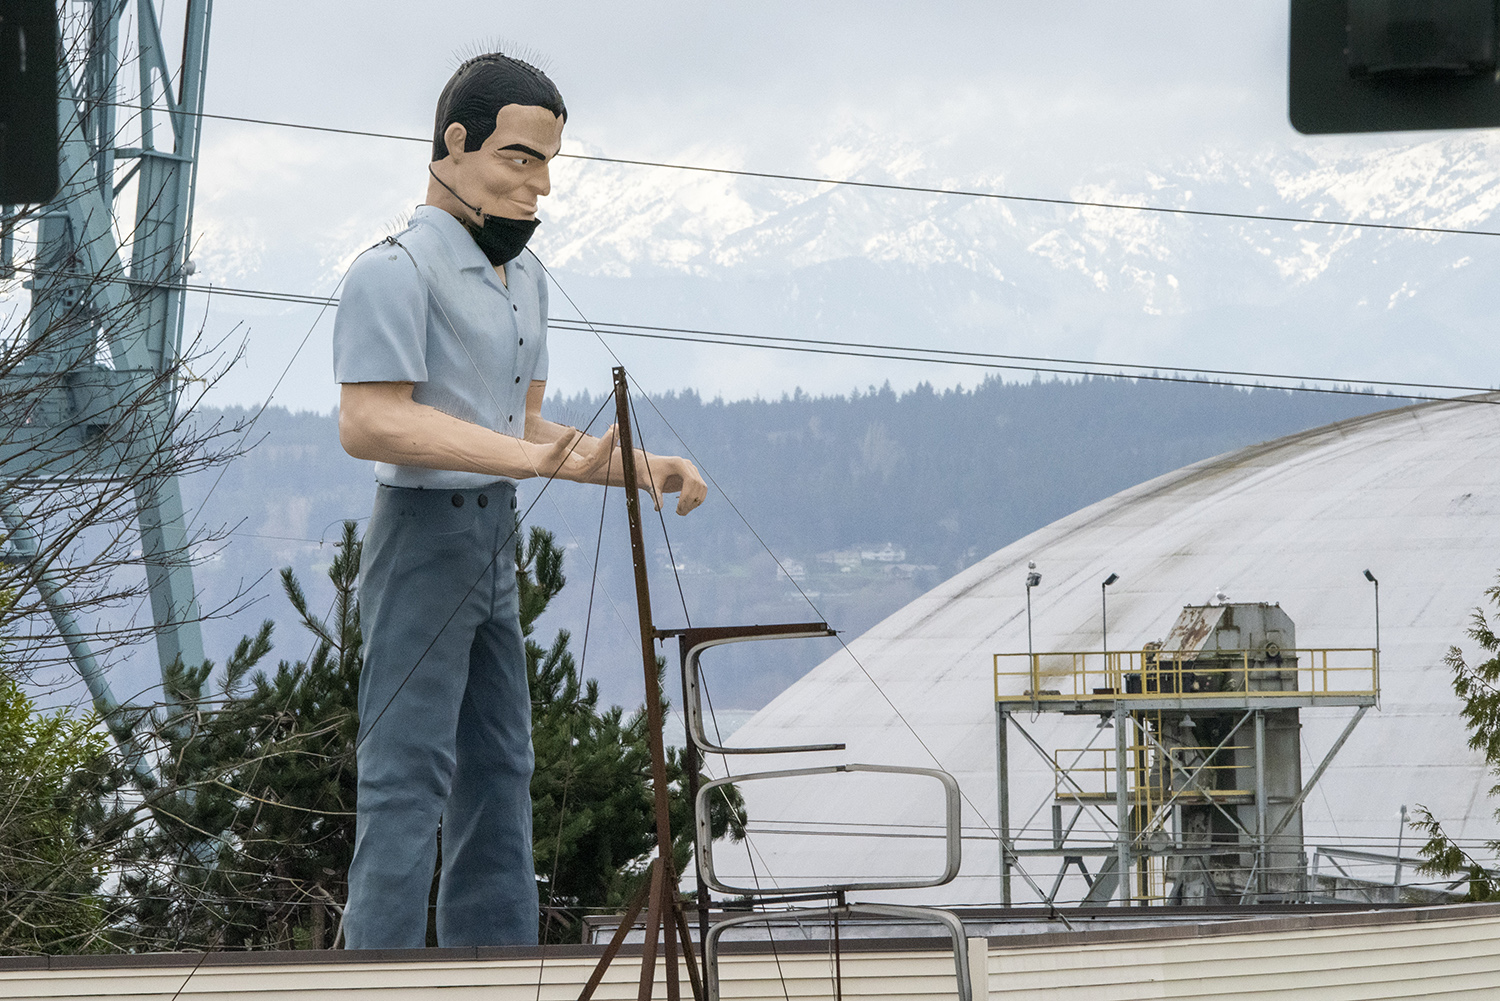 Everett's Muffler Man sports a denim look, jeans and a short-sleeved, button down shirt. Other Muffler Men across the country are outfitted with cowboy hats, crowns, space helmets and sombreros. (Rachael Jones / Seattle Refined)